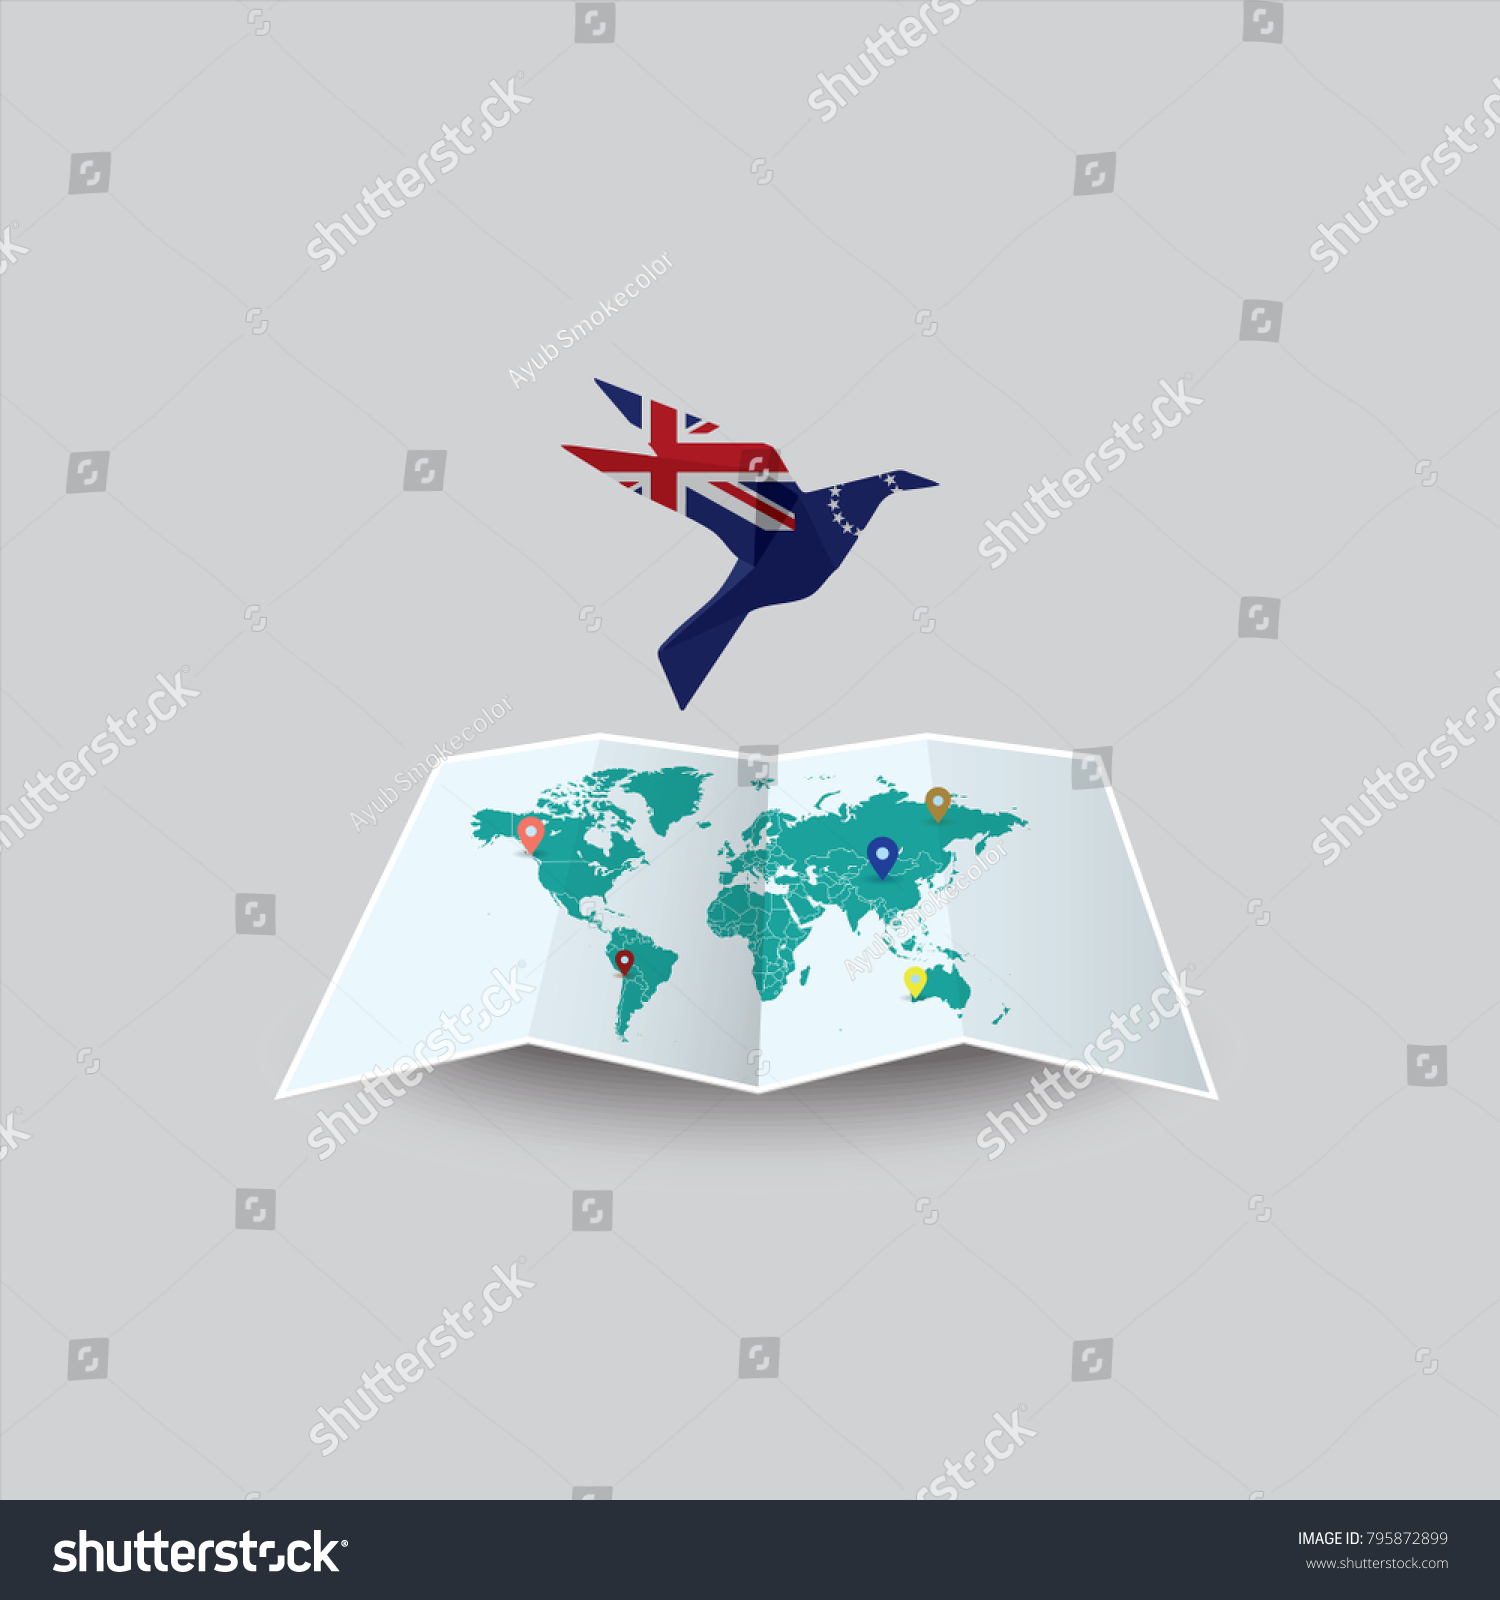 Cook Islands On World Map.Bird Peace World Cook Islands Flag Stock Vector Royalty Free